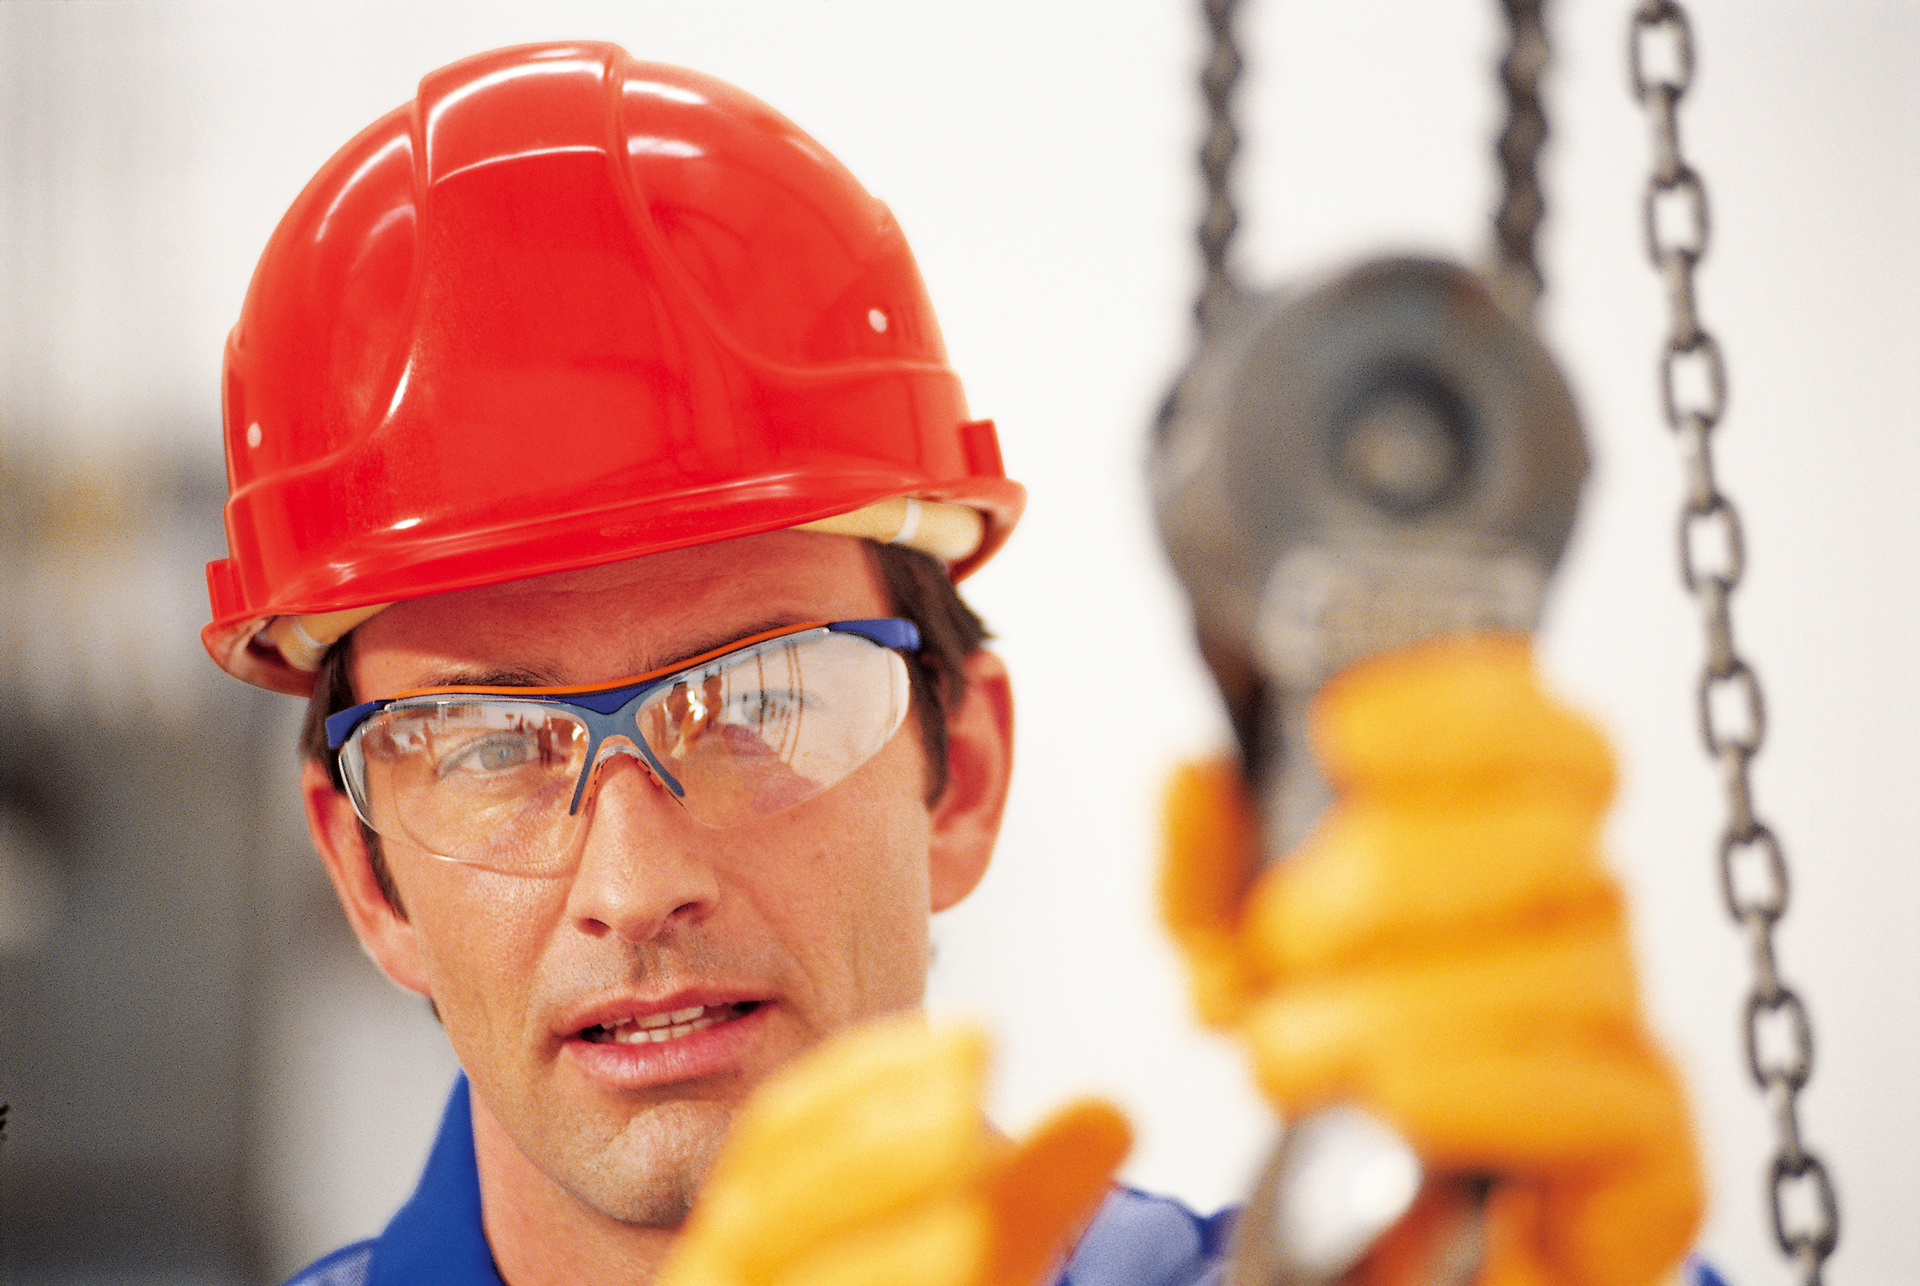 uvex i vo safety spectacles and protective eyewear